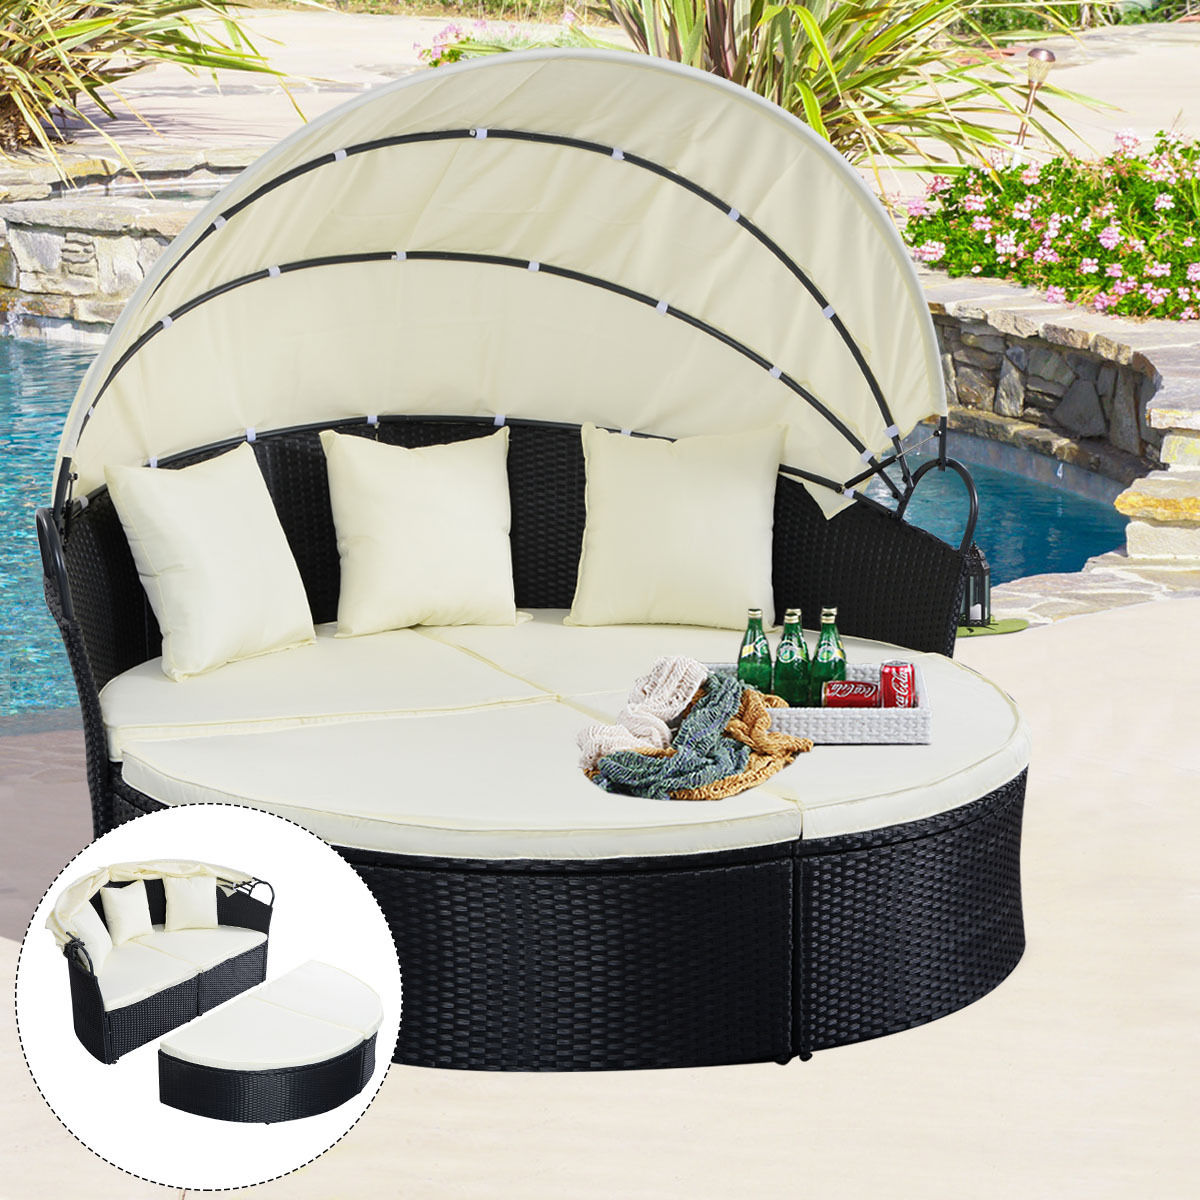 Costway Outdoor Patio Sofa Furniture Round Retractable Canopy Daybed Black Wicker Rattan